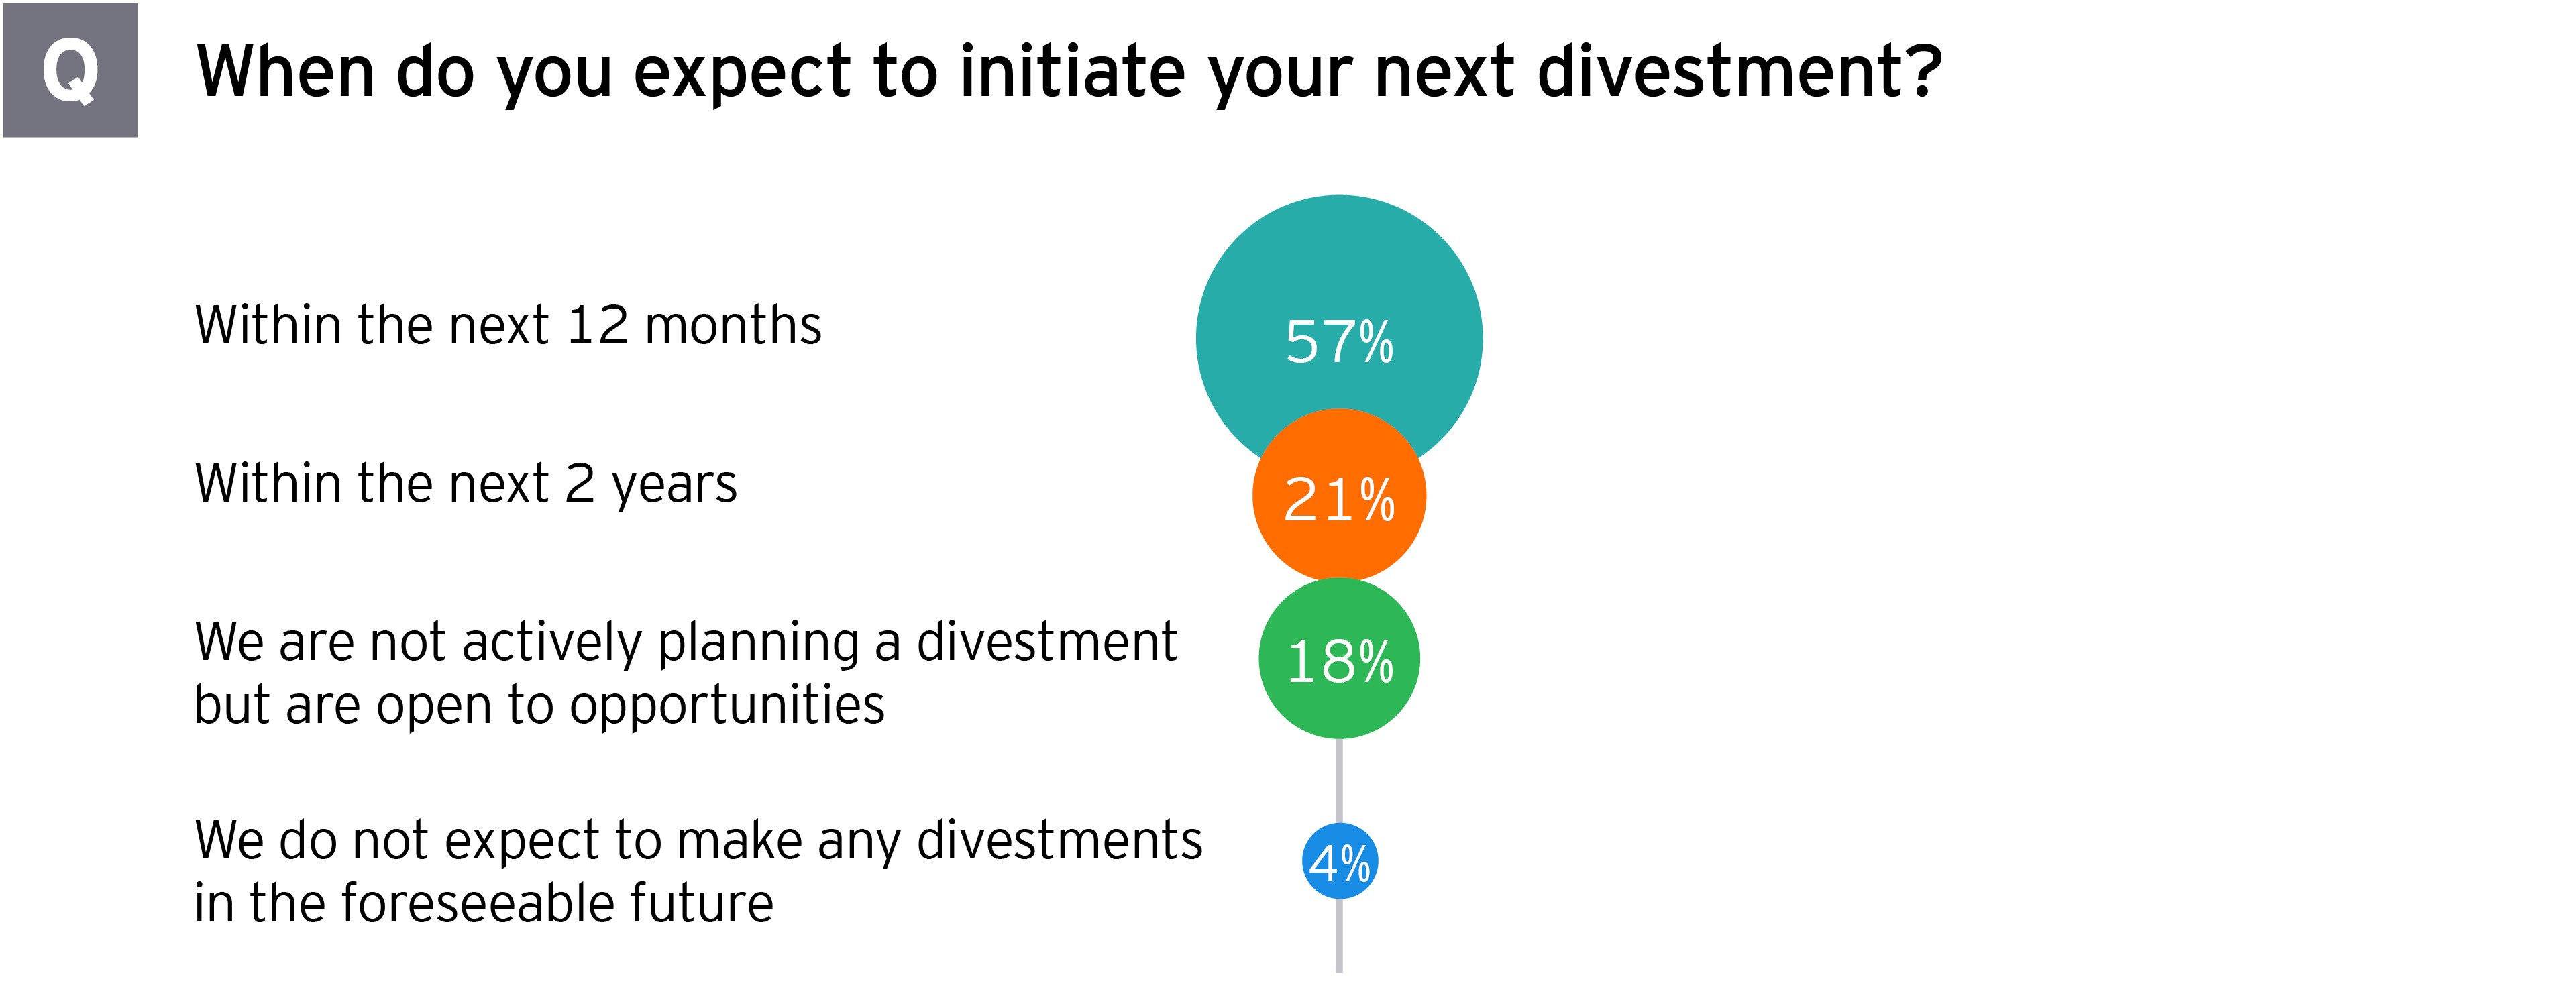 Divestment study responses when expect to initiate next divestment